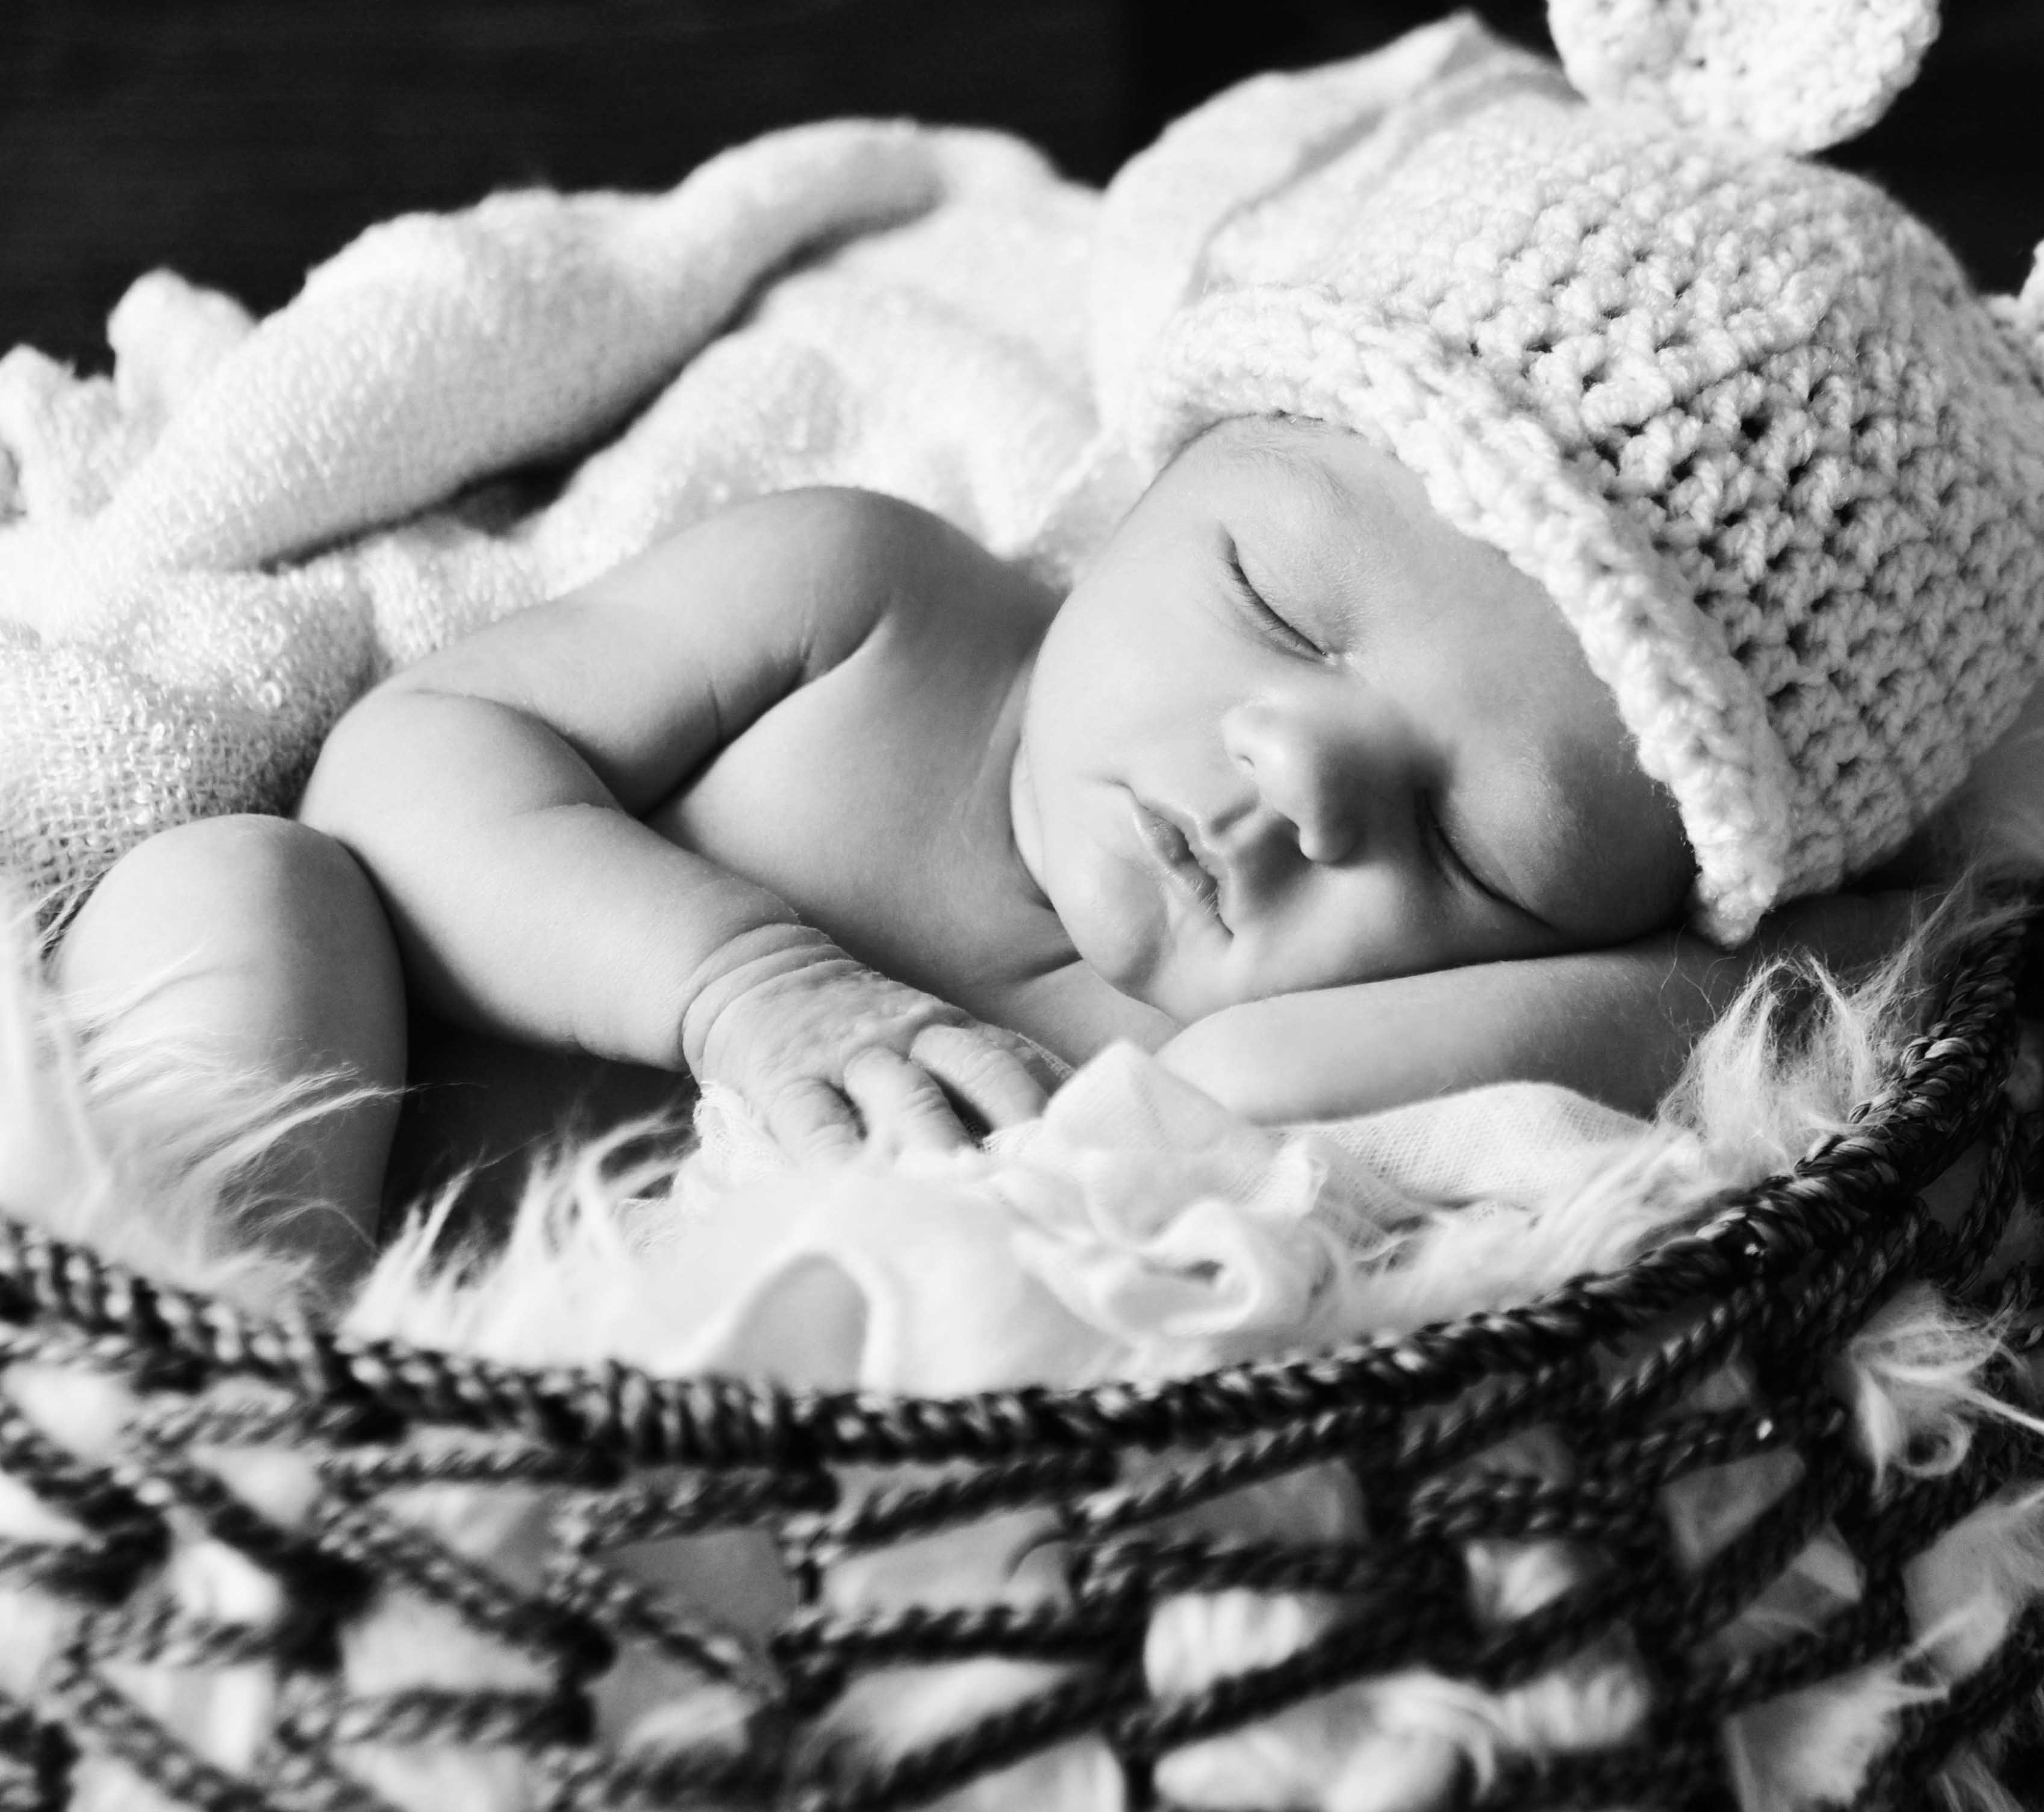 Black and White Baby Photography, Eclectic Photography, Brighton, South East